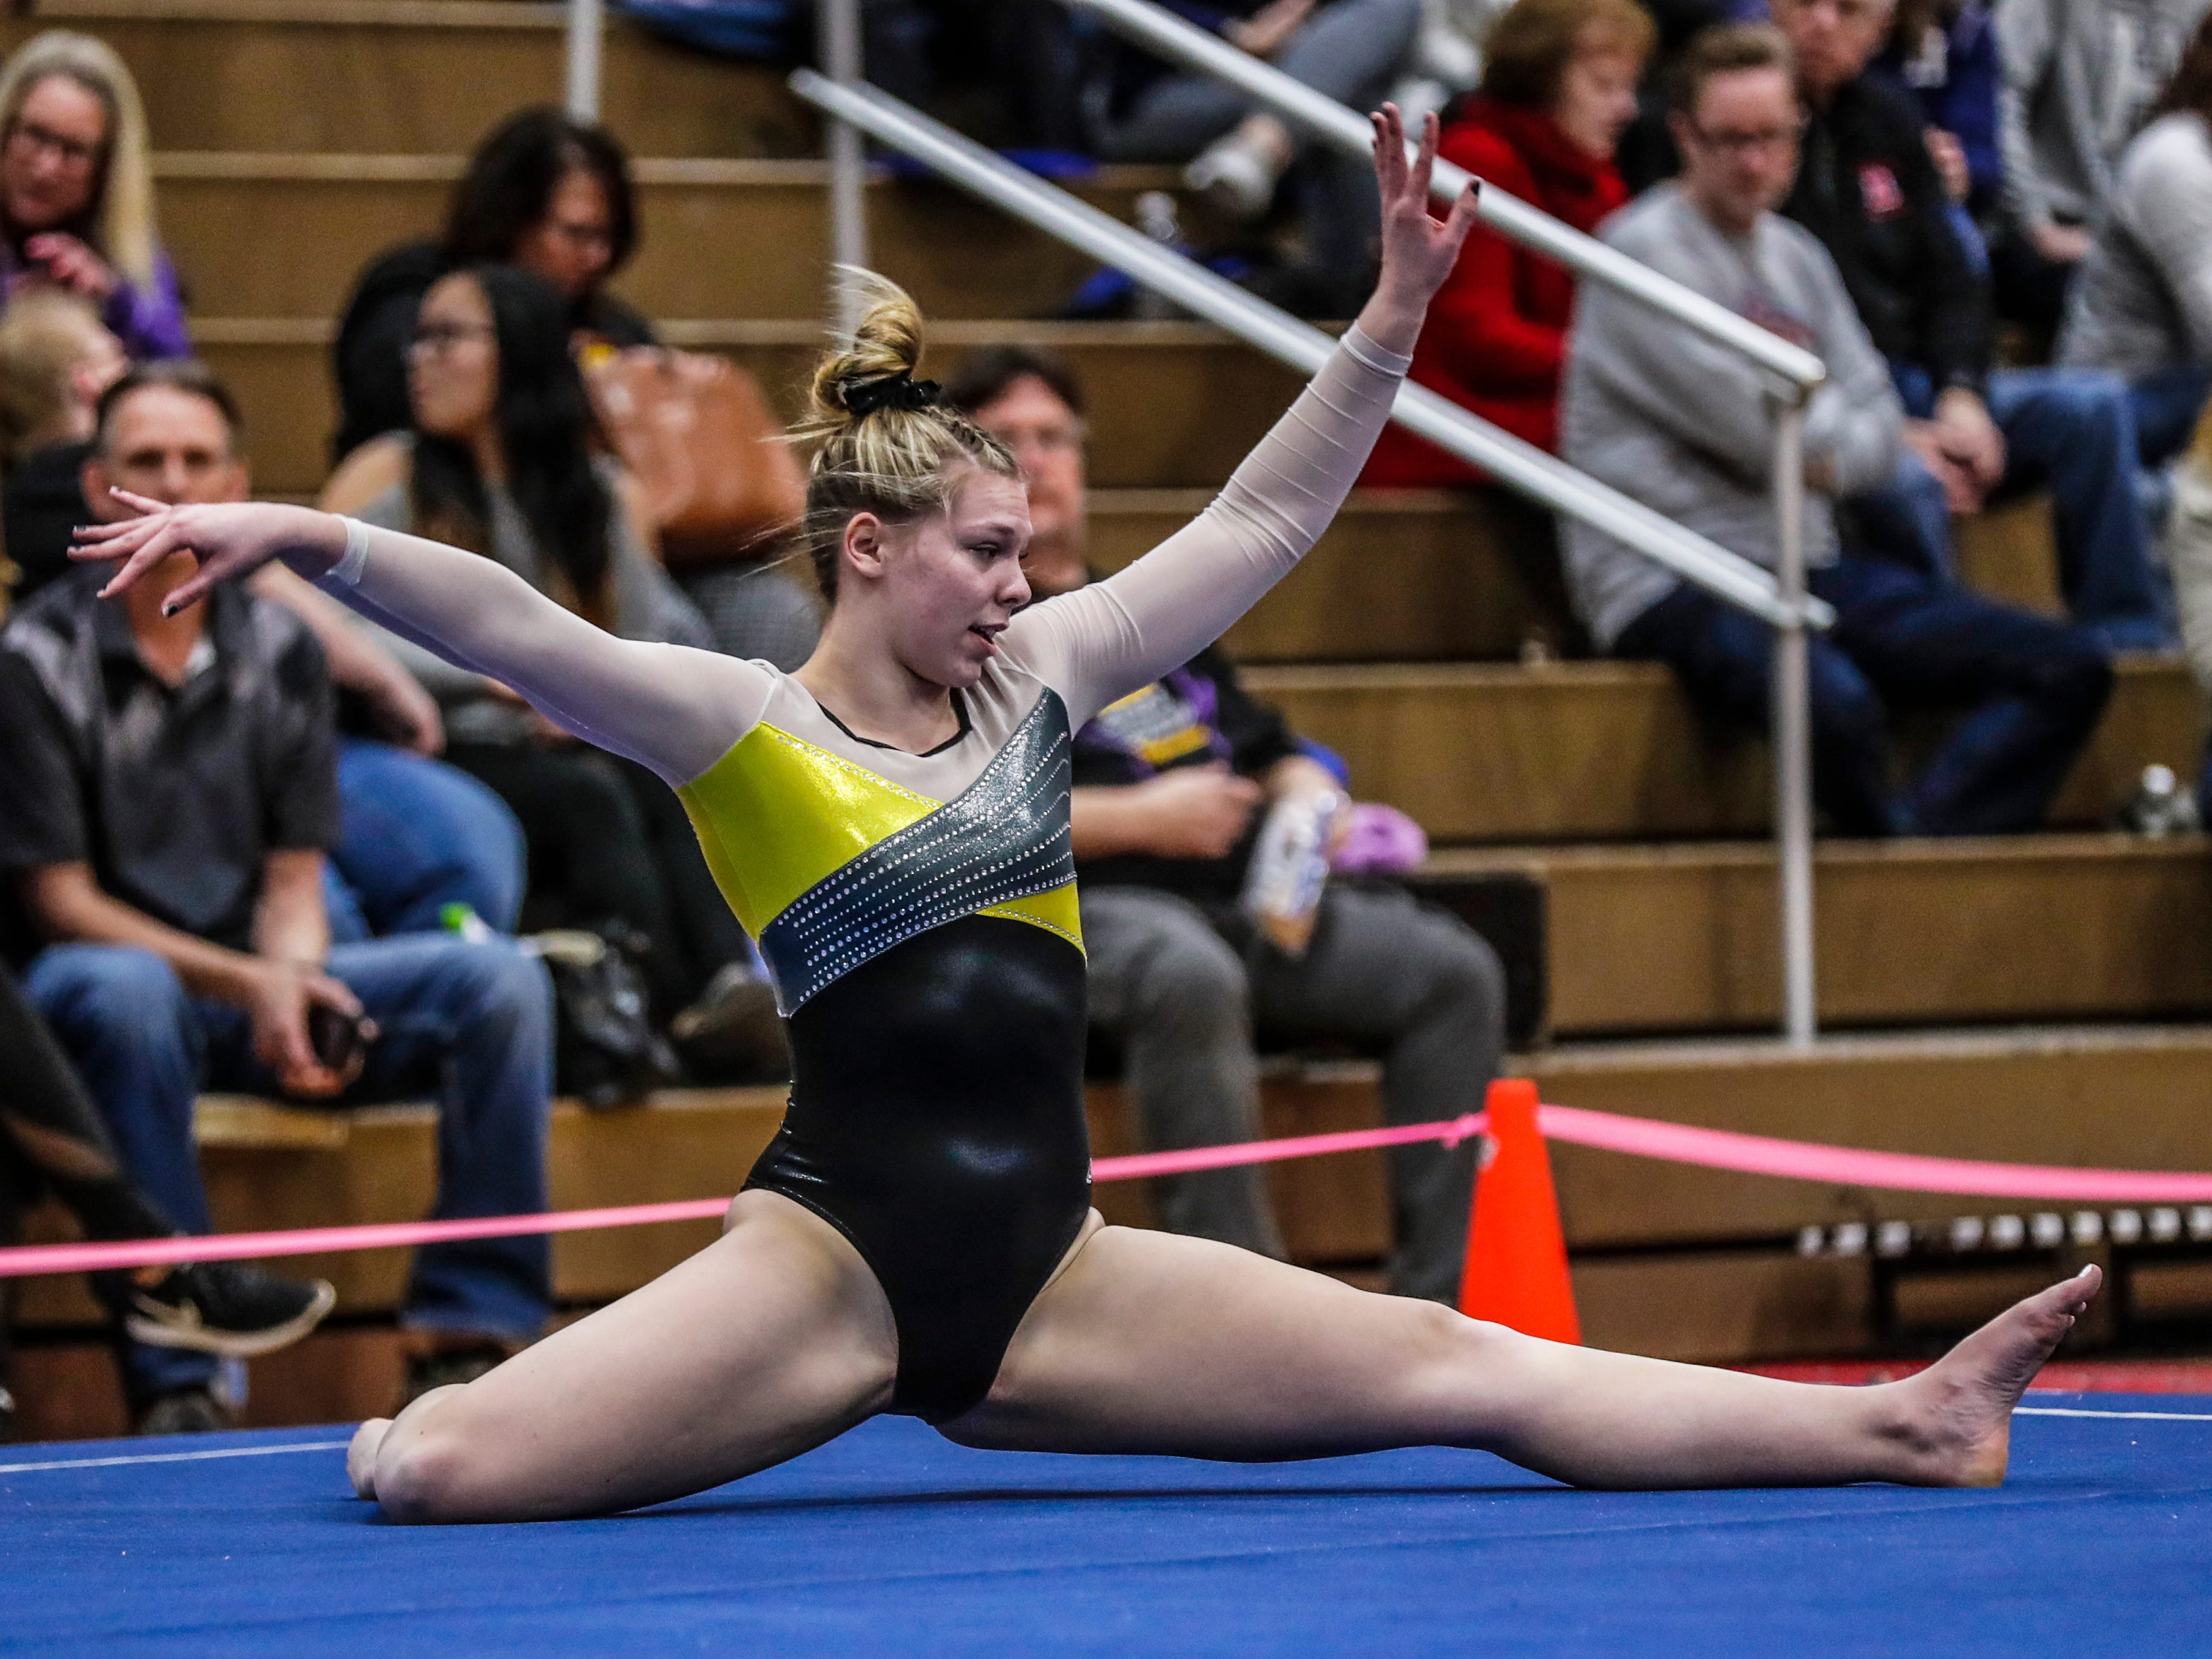 Waupun's Emily Rens competes in the floor exercise during WIAA state gymnastics competition Friday, March 1, 2019, at Lincoln High School Field House in Wisconsin Rapids, Wis. T'xer Zhon Kha/USA TODAY NETWORK-Wisconsin